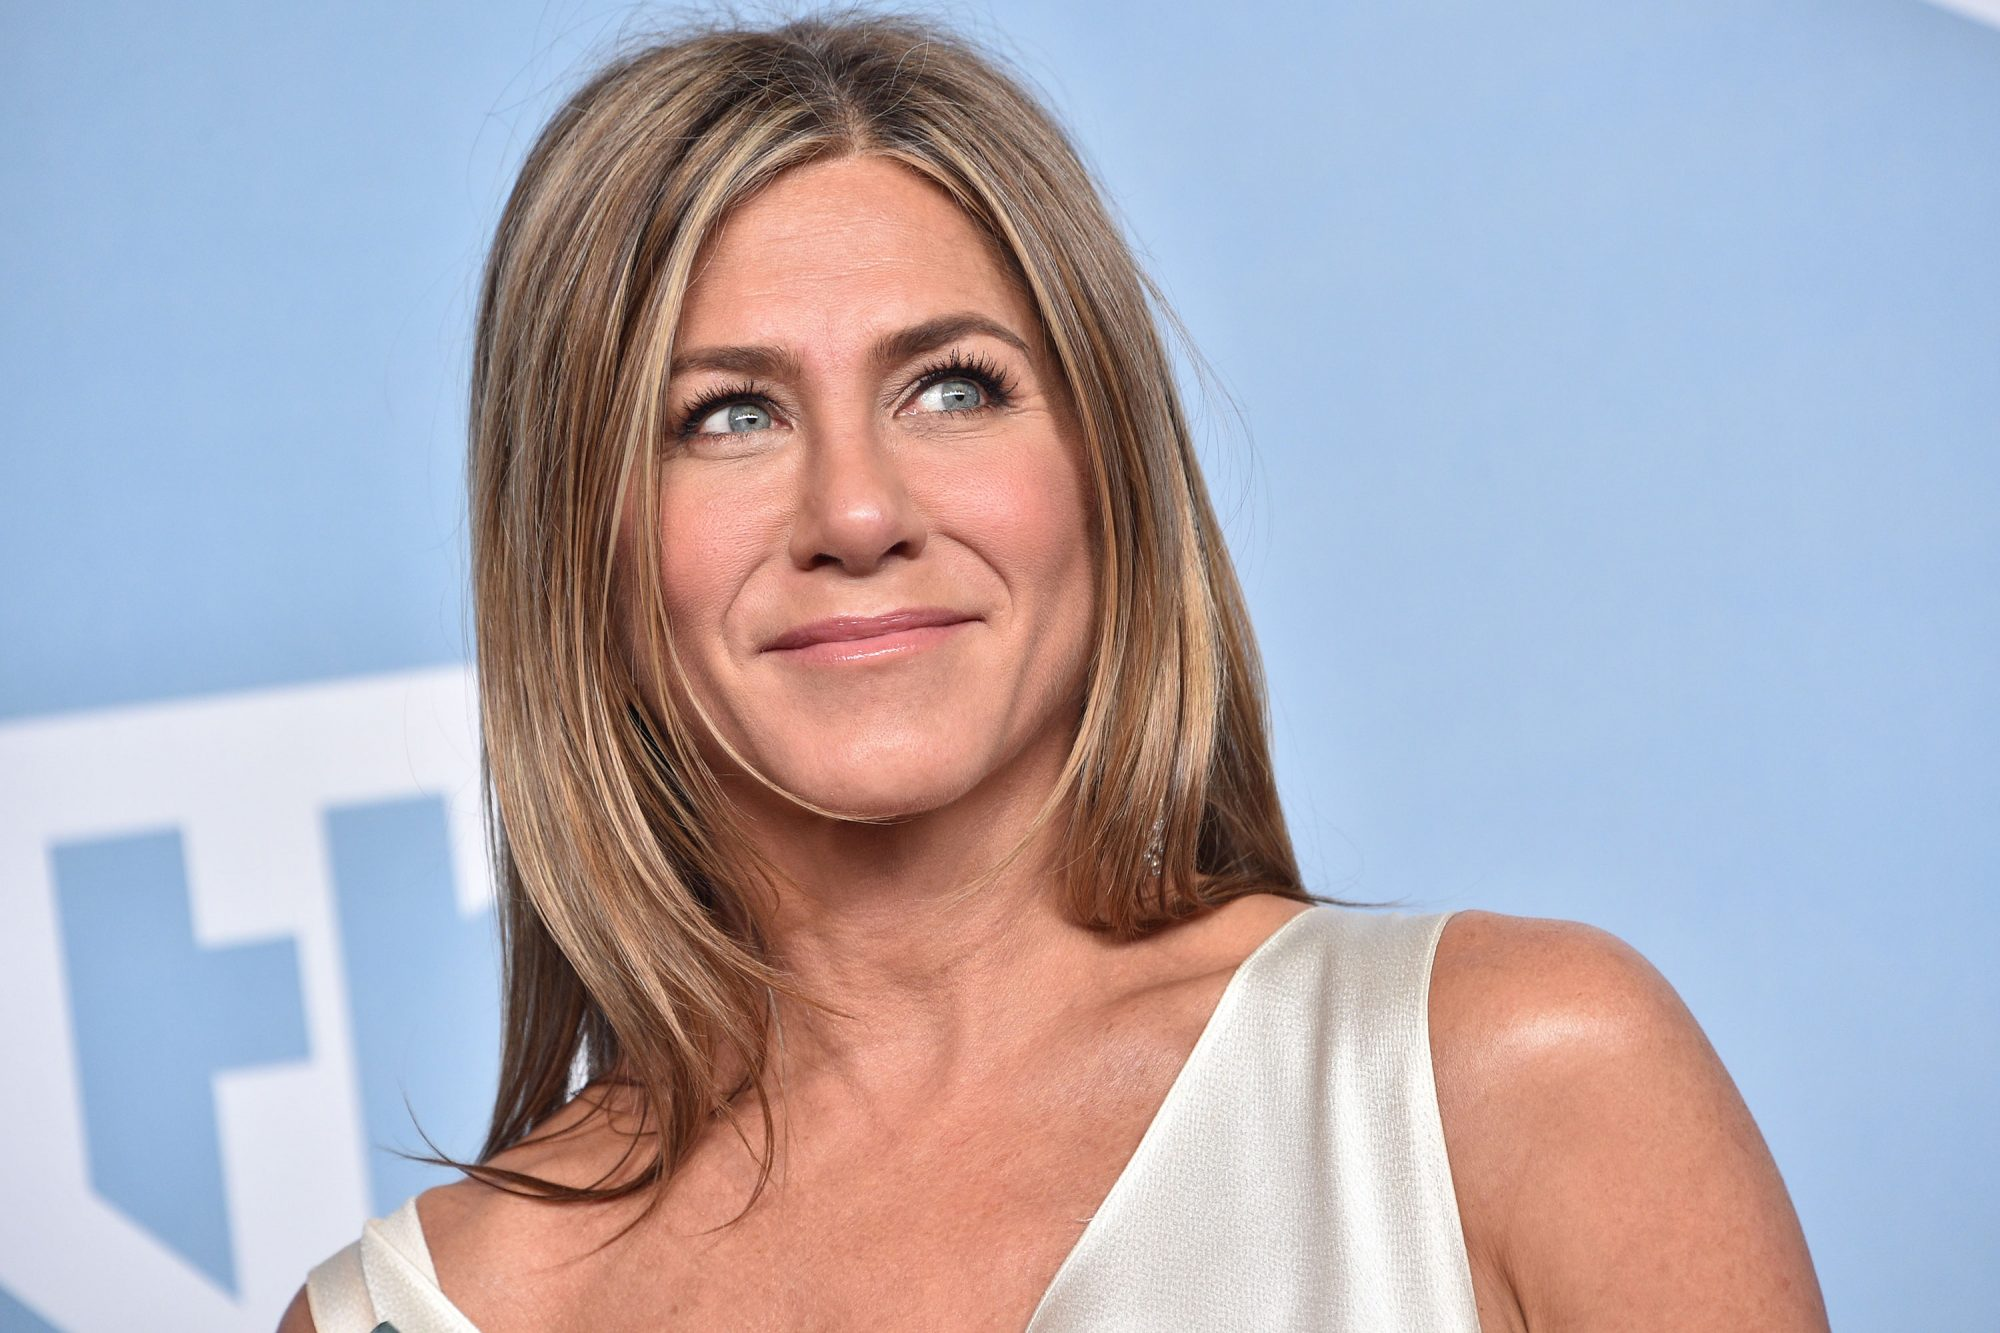 Jennifer Aniston Tie Dye Mask Trend